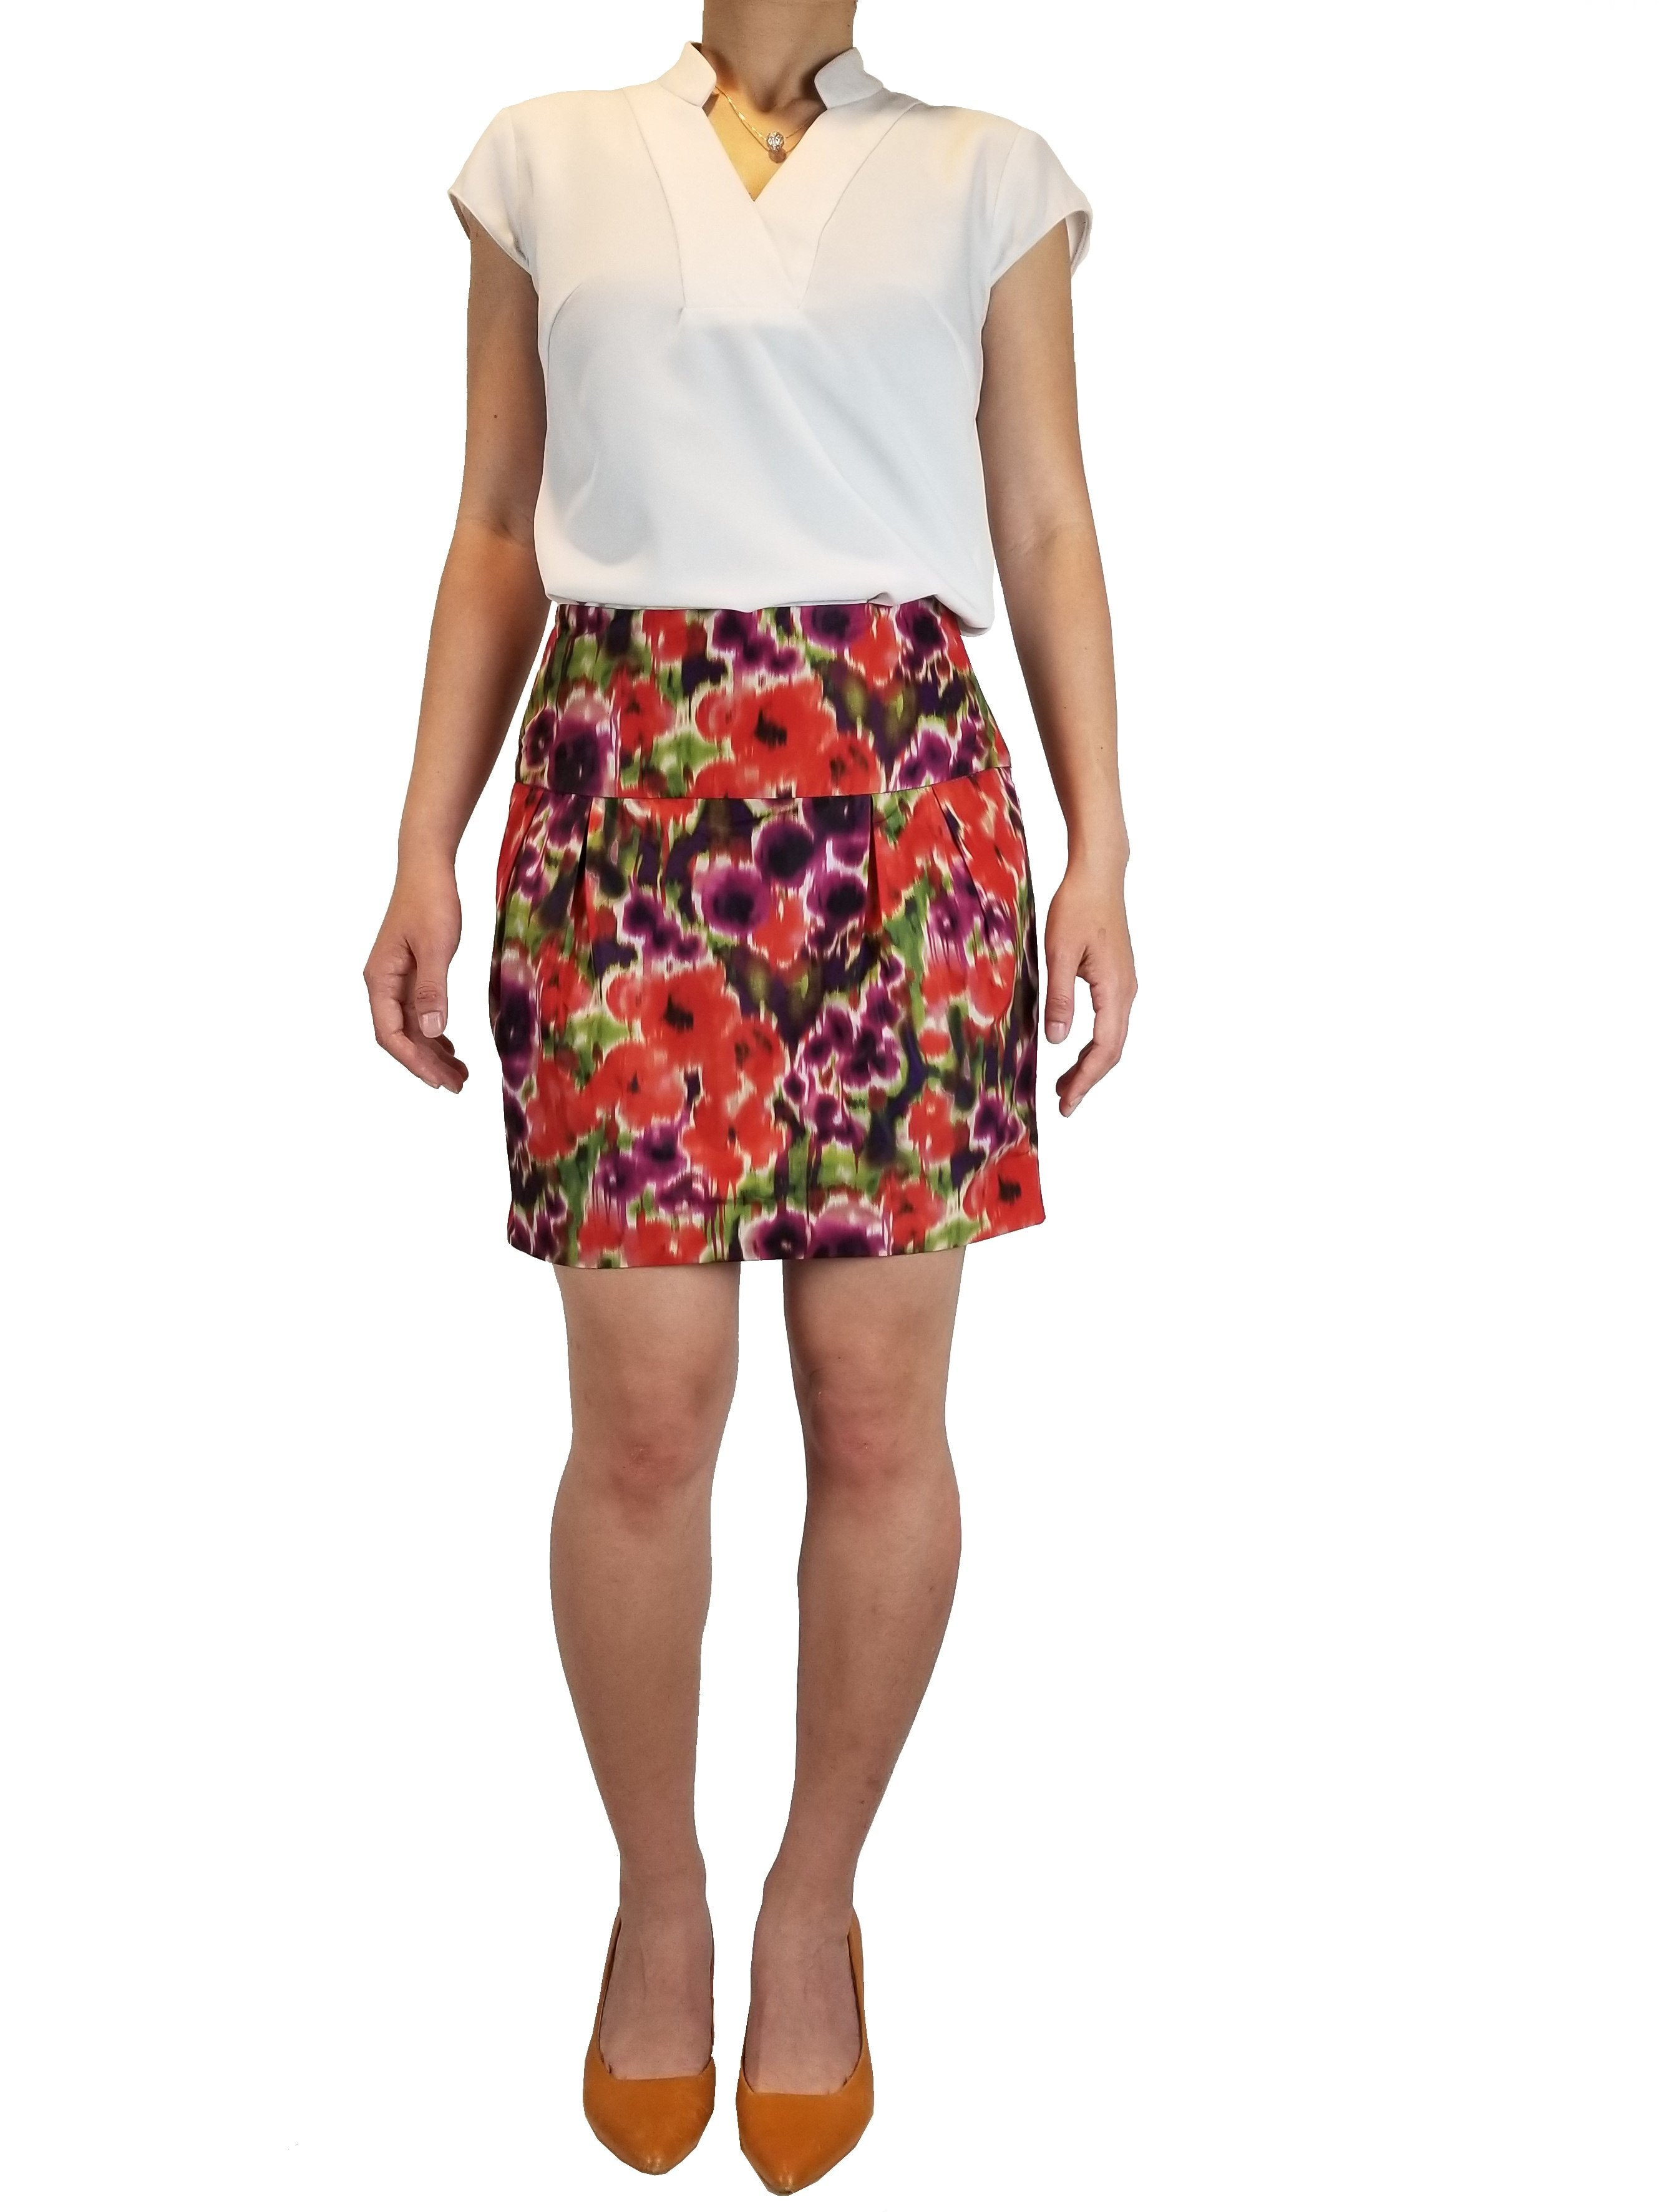 Bebe tie-die orange mini skirt, Vibrant color for the vibrant you!, Orange, Shell: 100% Polyester. Lining: 97% Polyester, 3% Spandex, women's Skirts & Shorts, women's Orange Skirts & Shorts, Bebe women's Skirts & Shorts, skirt, floral purple and orange mini skirt, fashion, floral multi-colored mini skirt